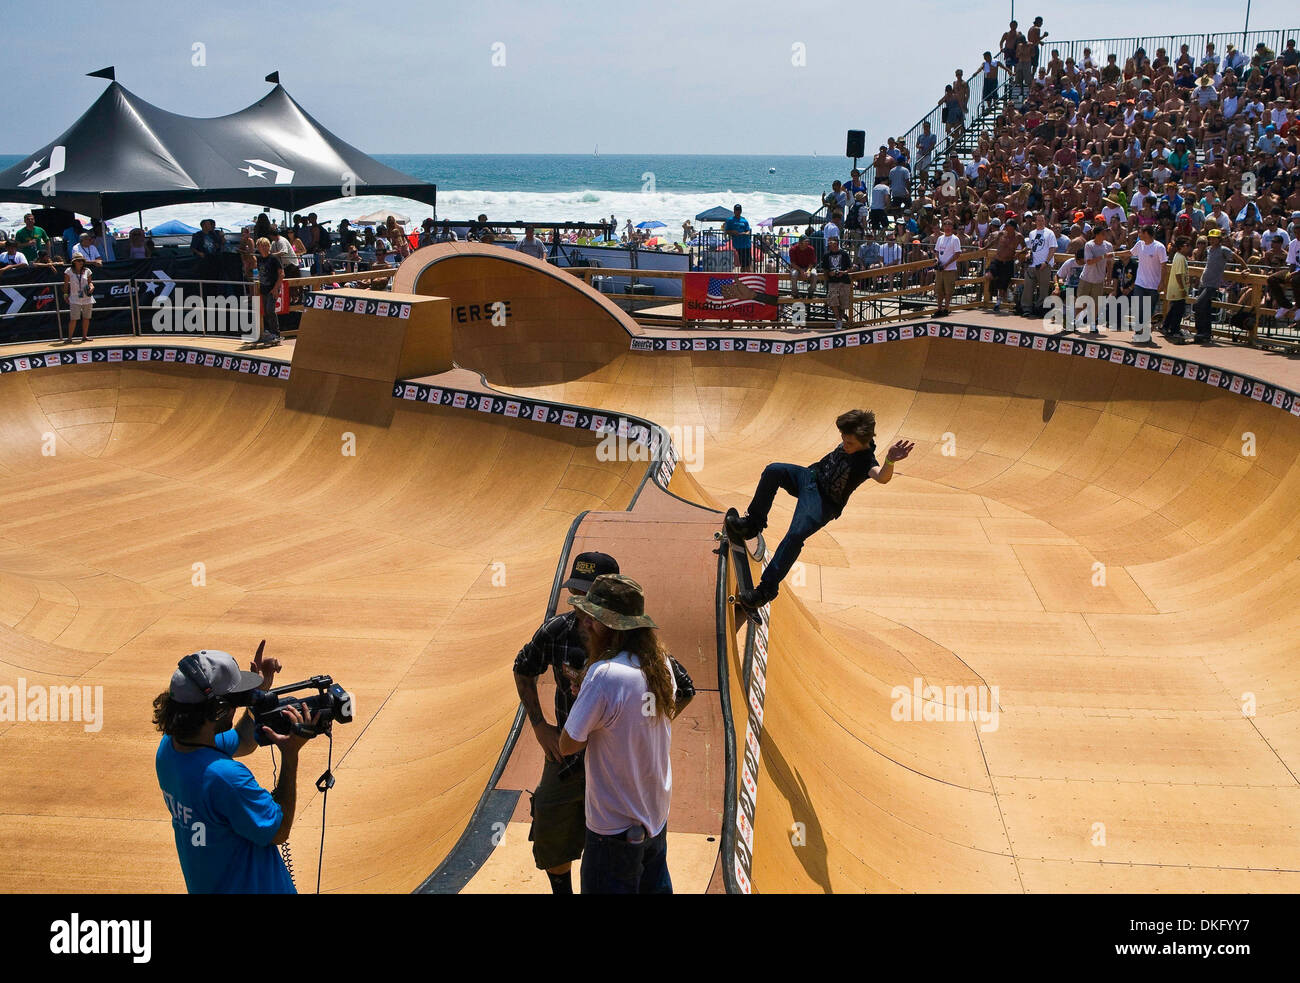 Jul 26, 2009 - Huntington Beach, CA, USA - KEVIN KOWALSKI, right, grinds the coping while practicing for his final heat as Fuel's JEFF KING, center-right, interviews event announcer RYAN CLEMENTS, center-left, during the US Open of Surfing (Credit Image: ZUMApress.com) - Stock Image